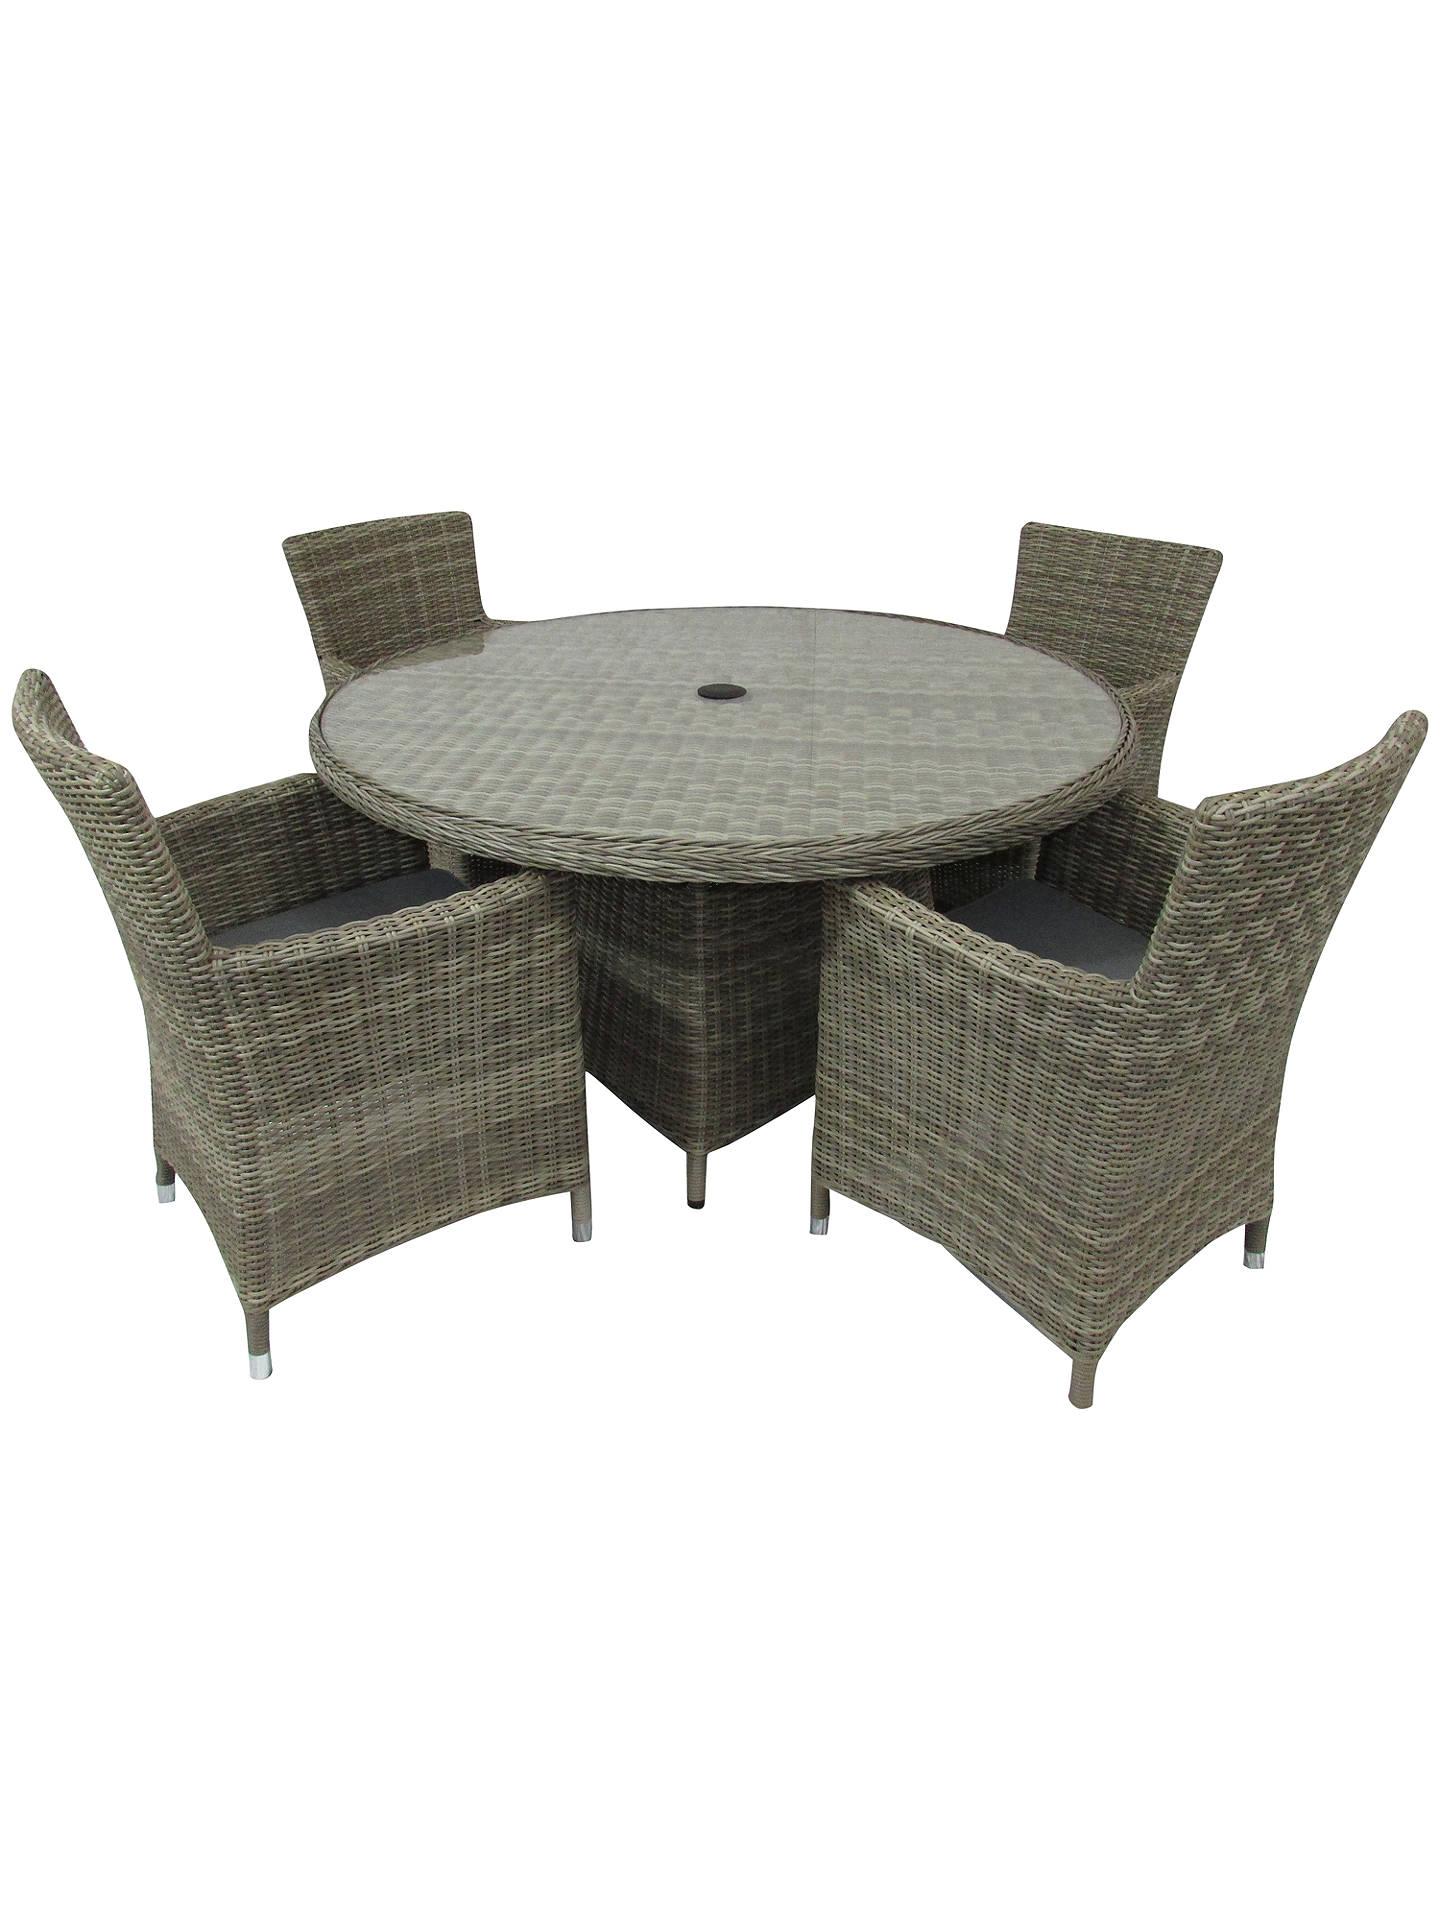 Buy Royalcraft Wentworth Carver 4-Seater Garden Dining Table and Chairs Set Online at johnlewis.com